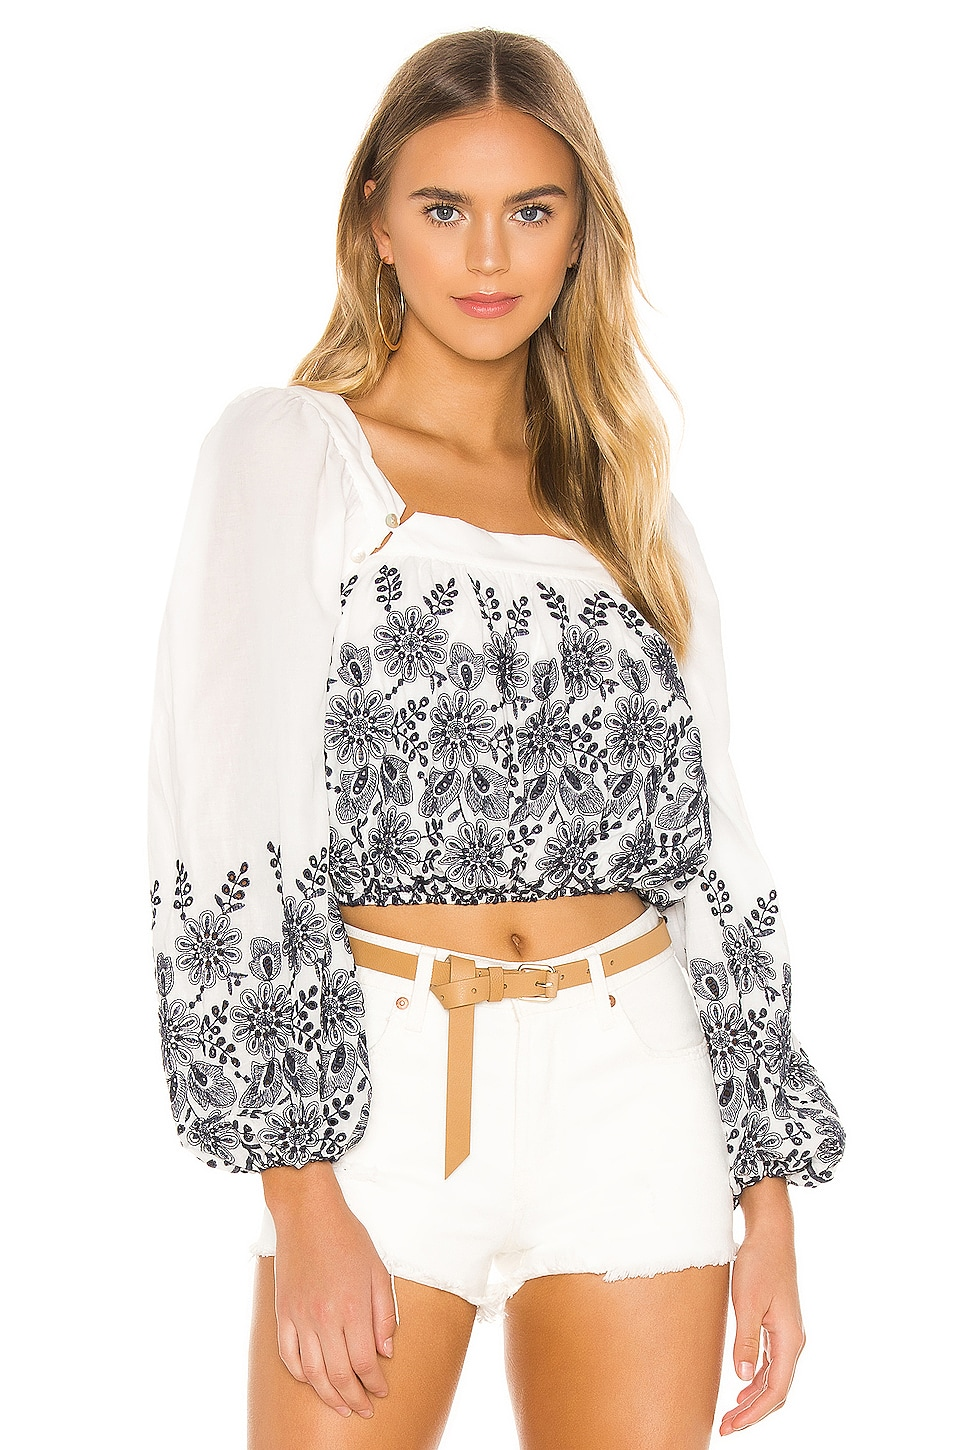 Tularosa Mae Top in White & Navy